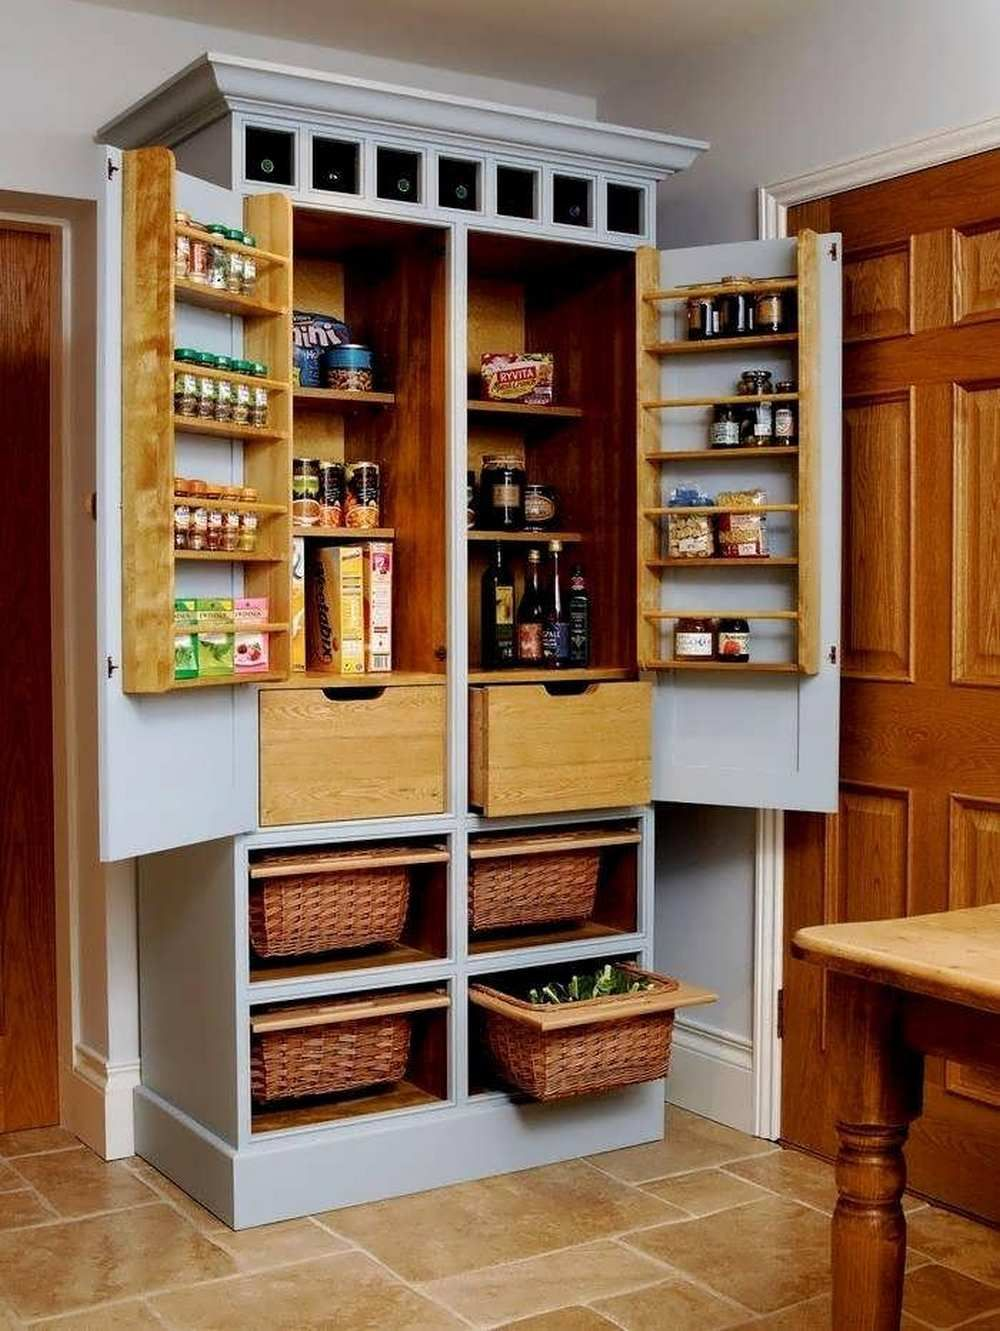 Built In Pantry Cabinet 12 Inch Deep Pantry Design Pantry Cabinet Free Standing Space Saving Kitchen